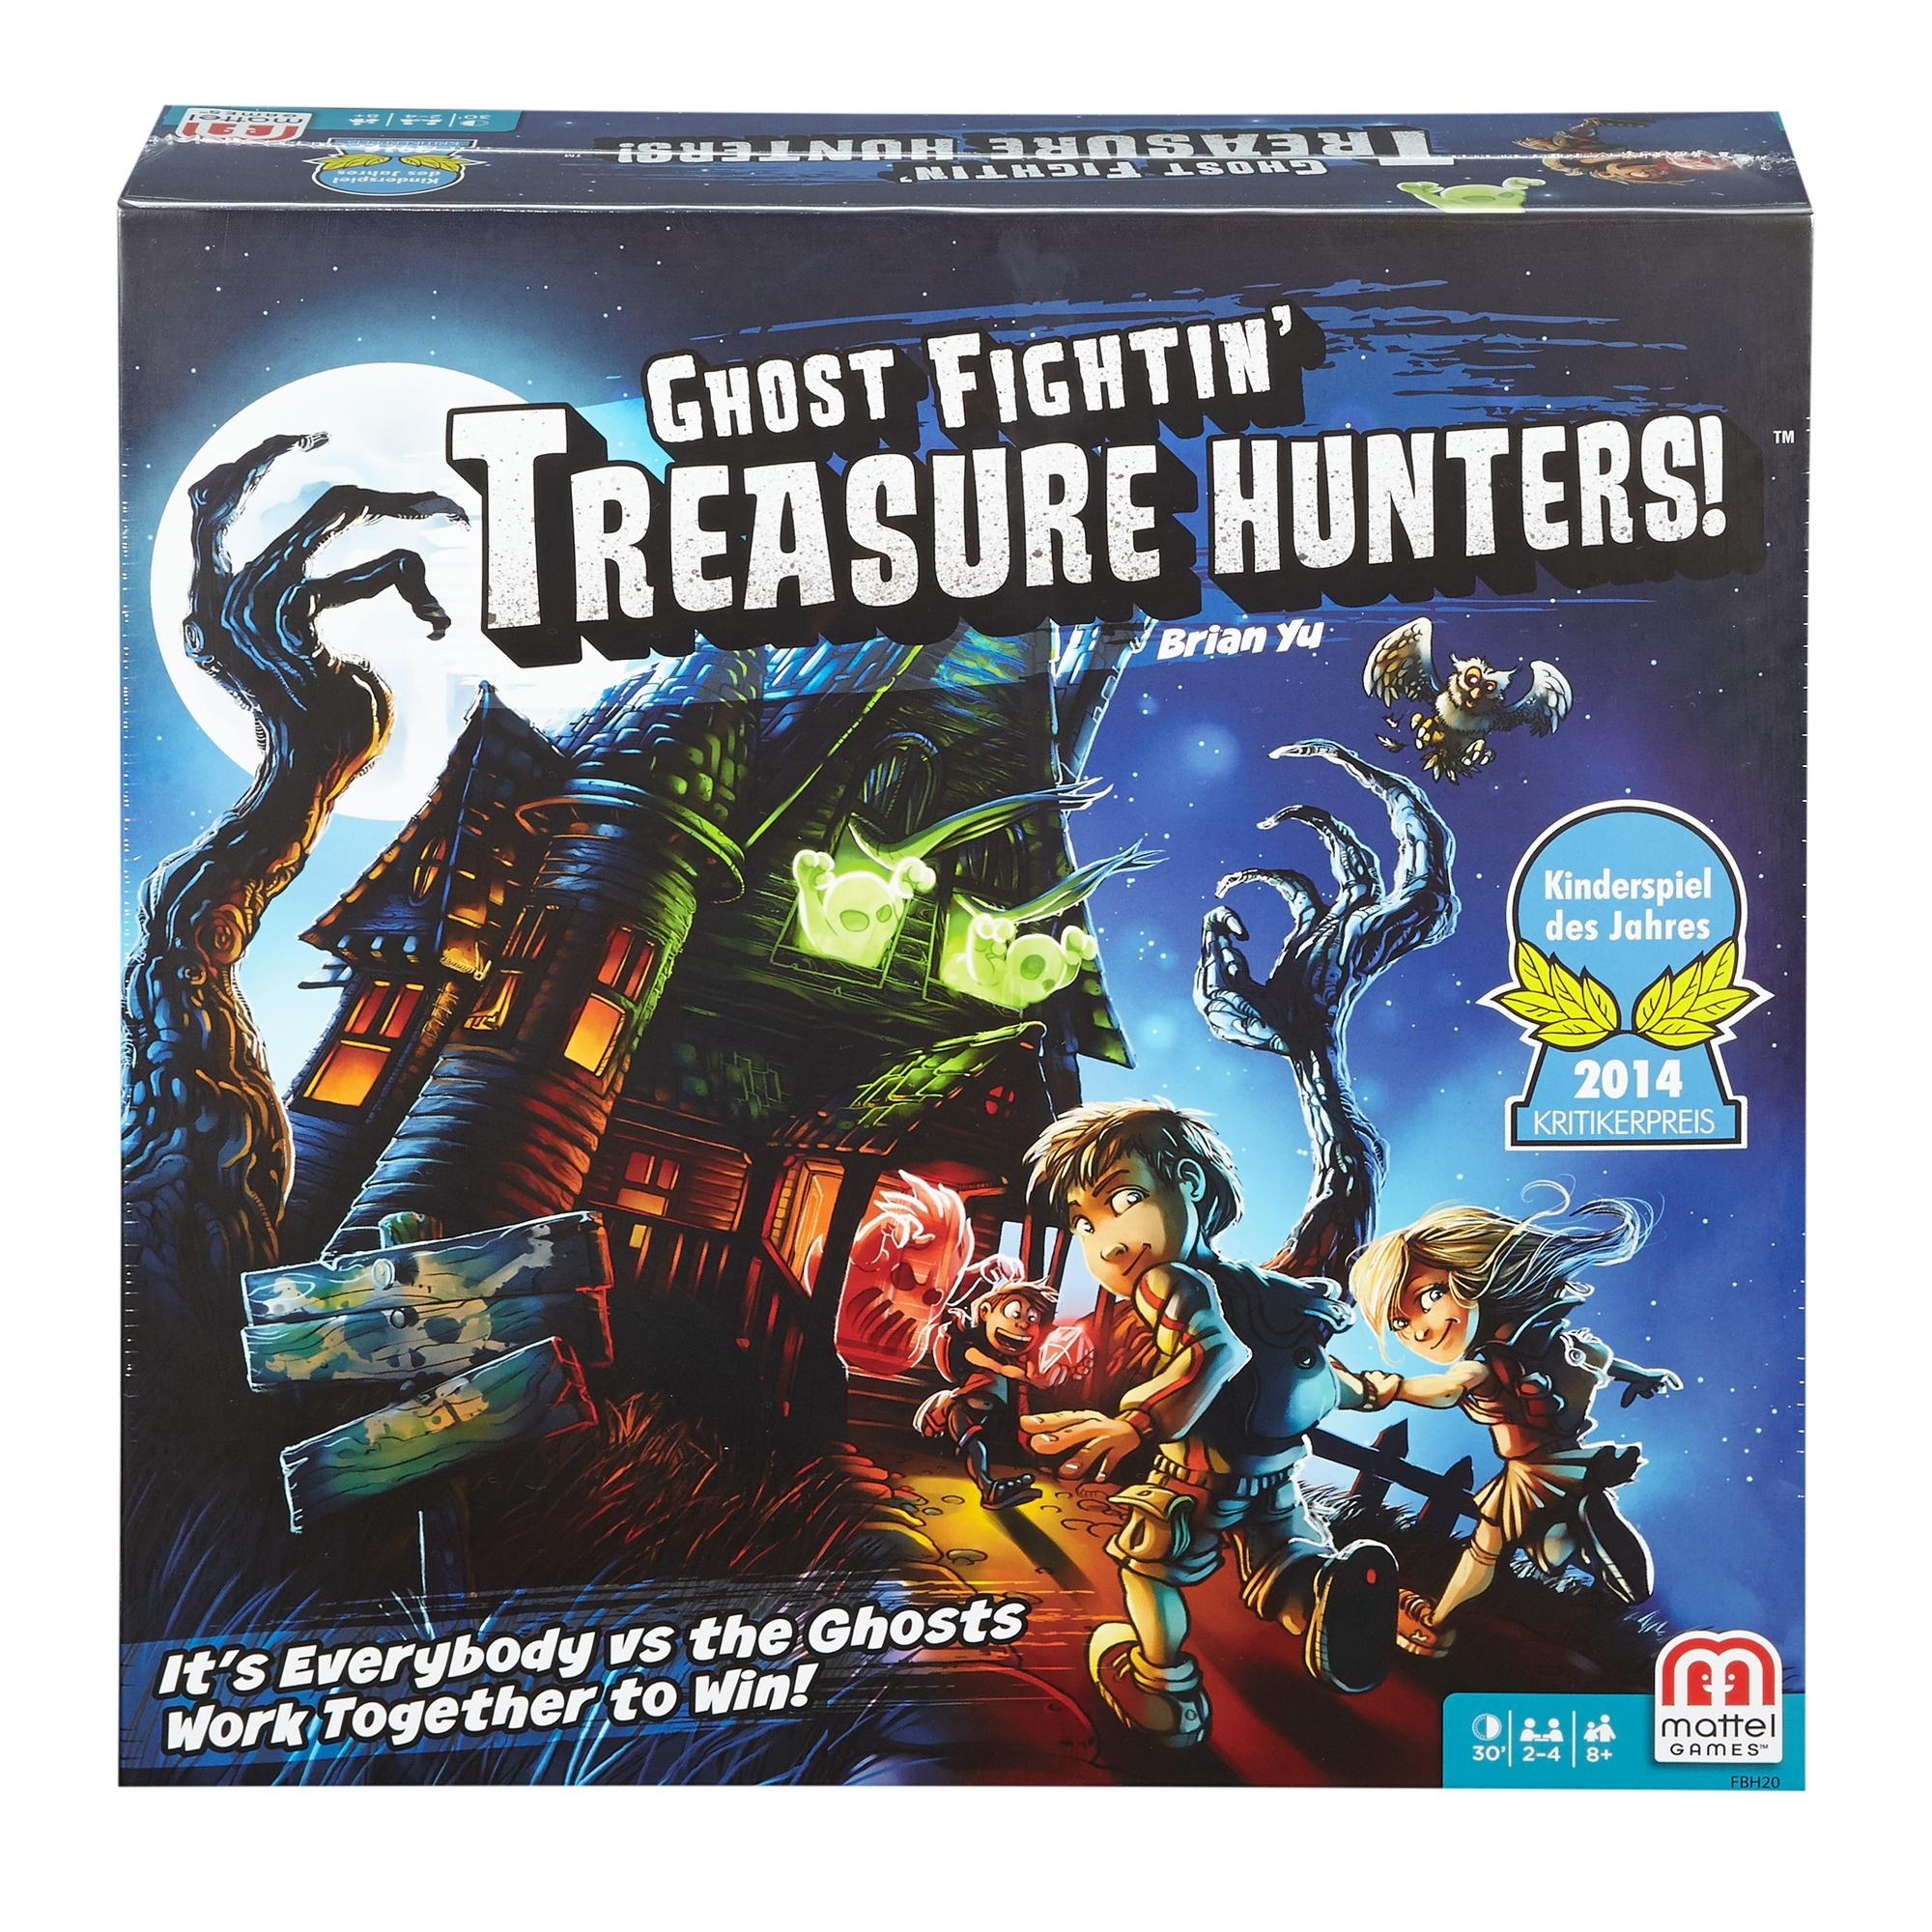 Ghost Fightin Treasure Hunters